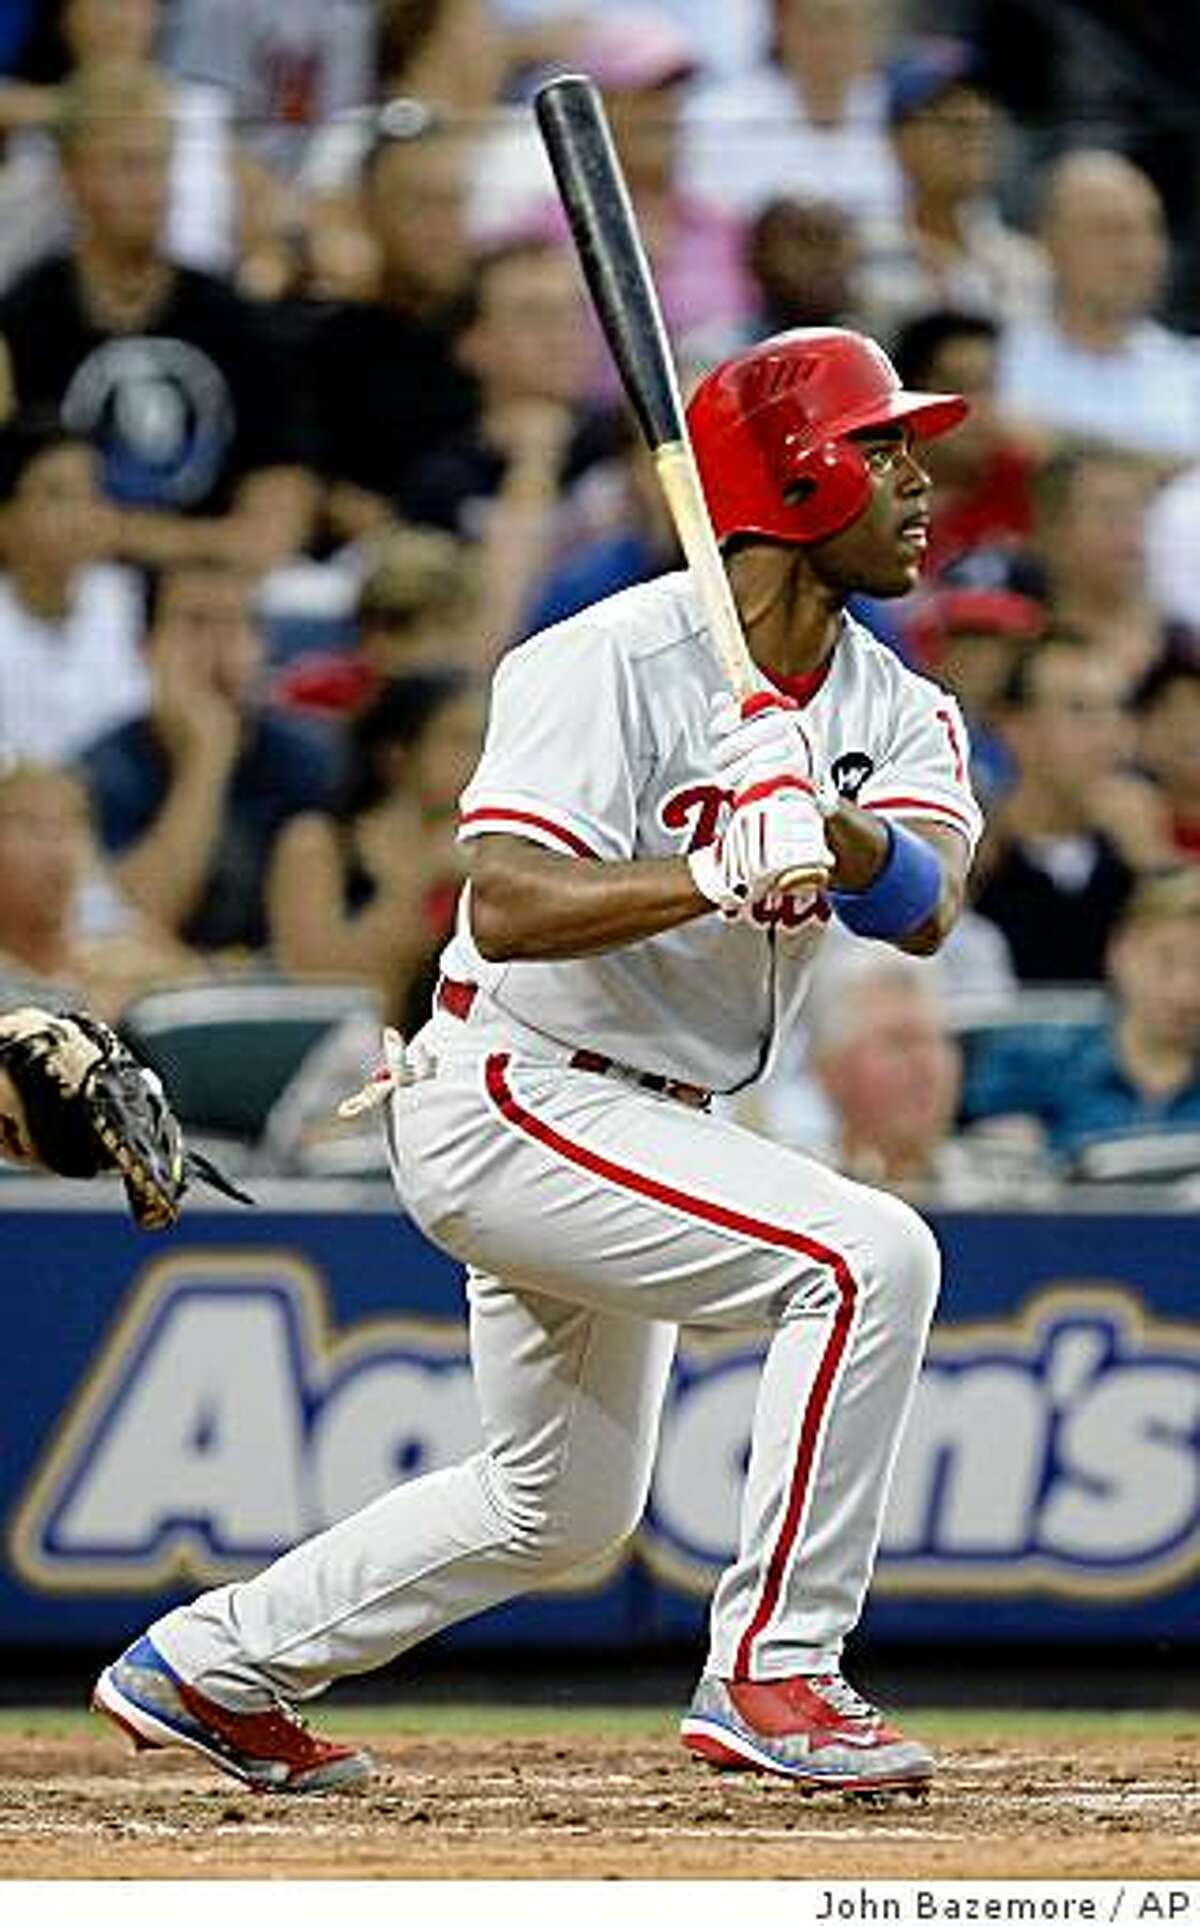 Philadelphia Phillies' Jimmy Rollins follows through with a base hit in the fourth inning of a baseball game against the Atlanta Braves in Atlanta, Thursday, July 2, 2009. (AP Photo/John Bazemore)